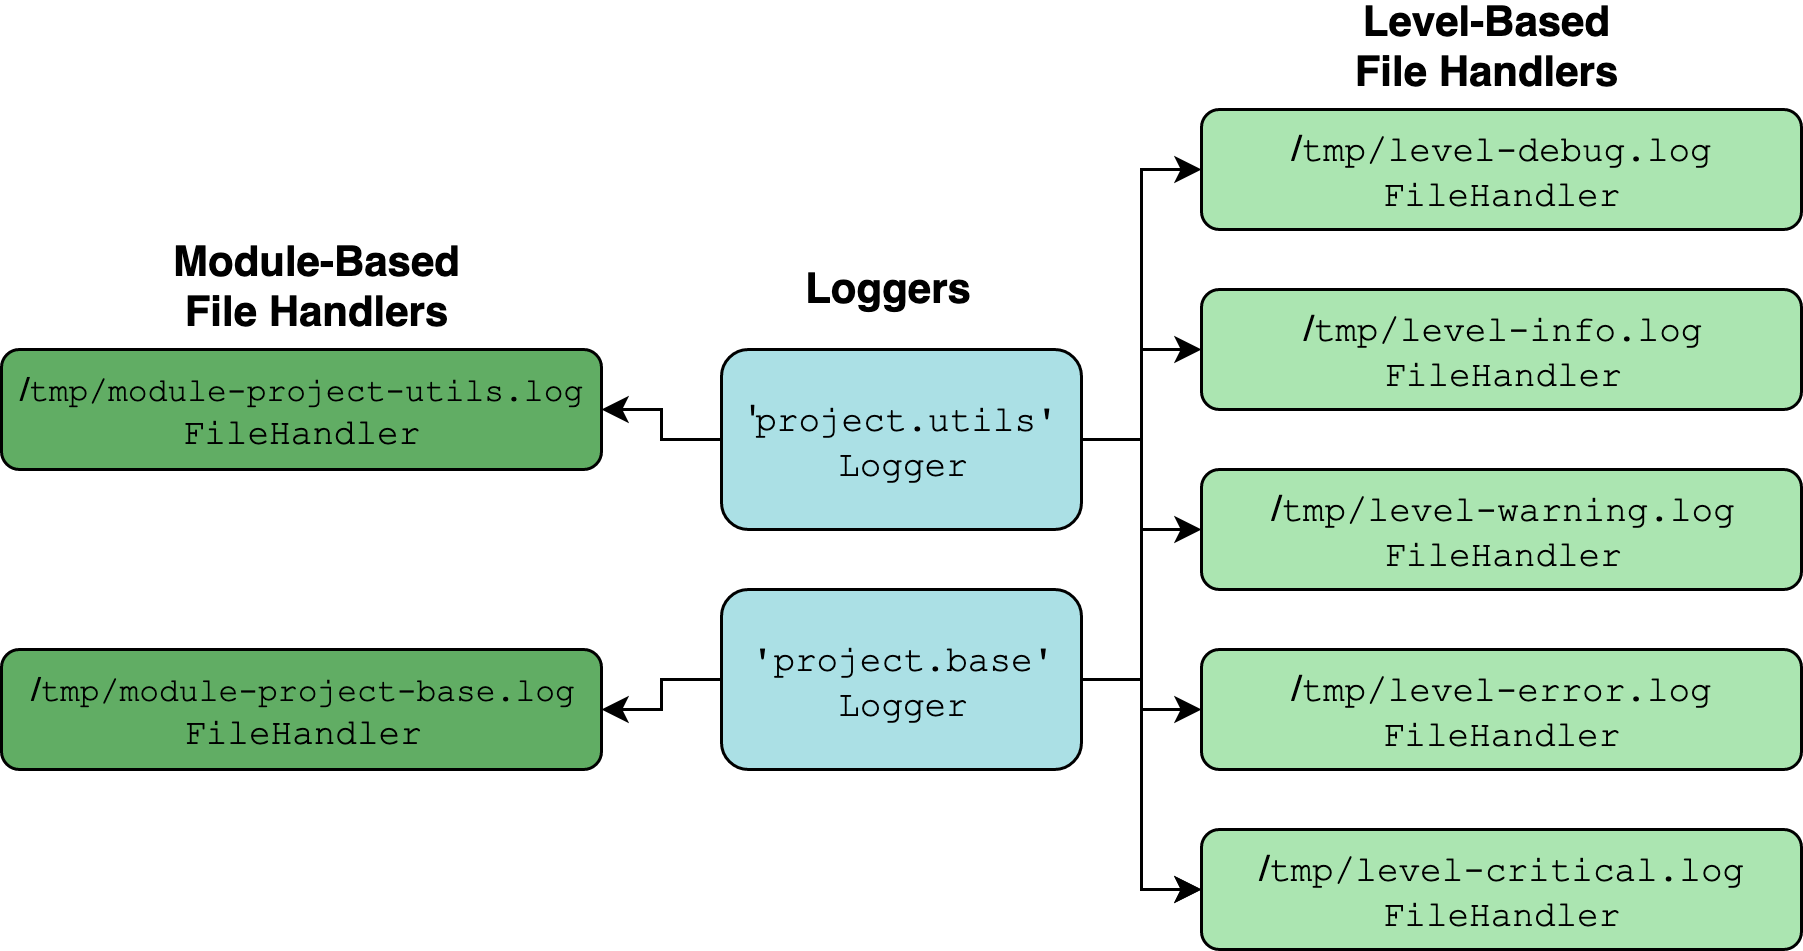 Multipronged logging setup